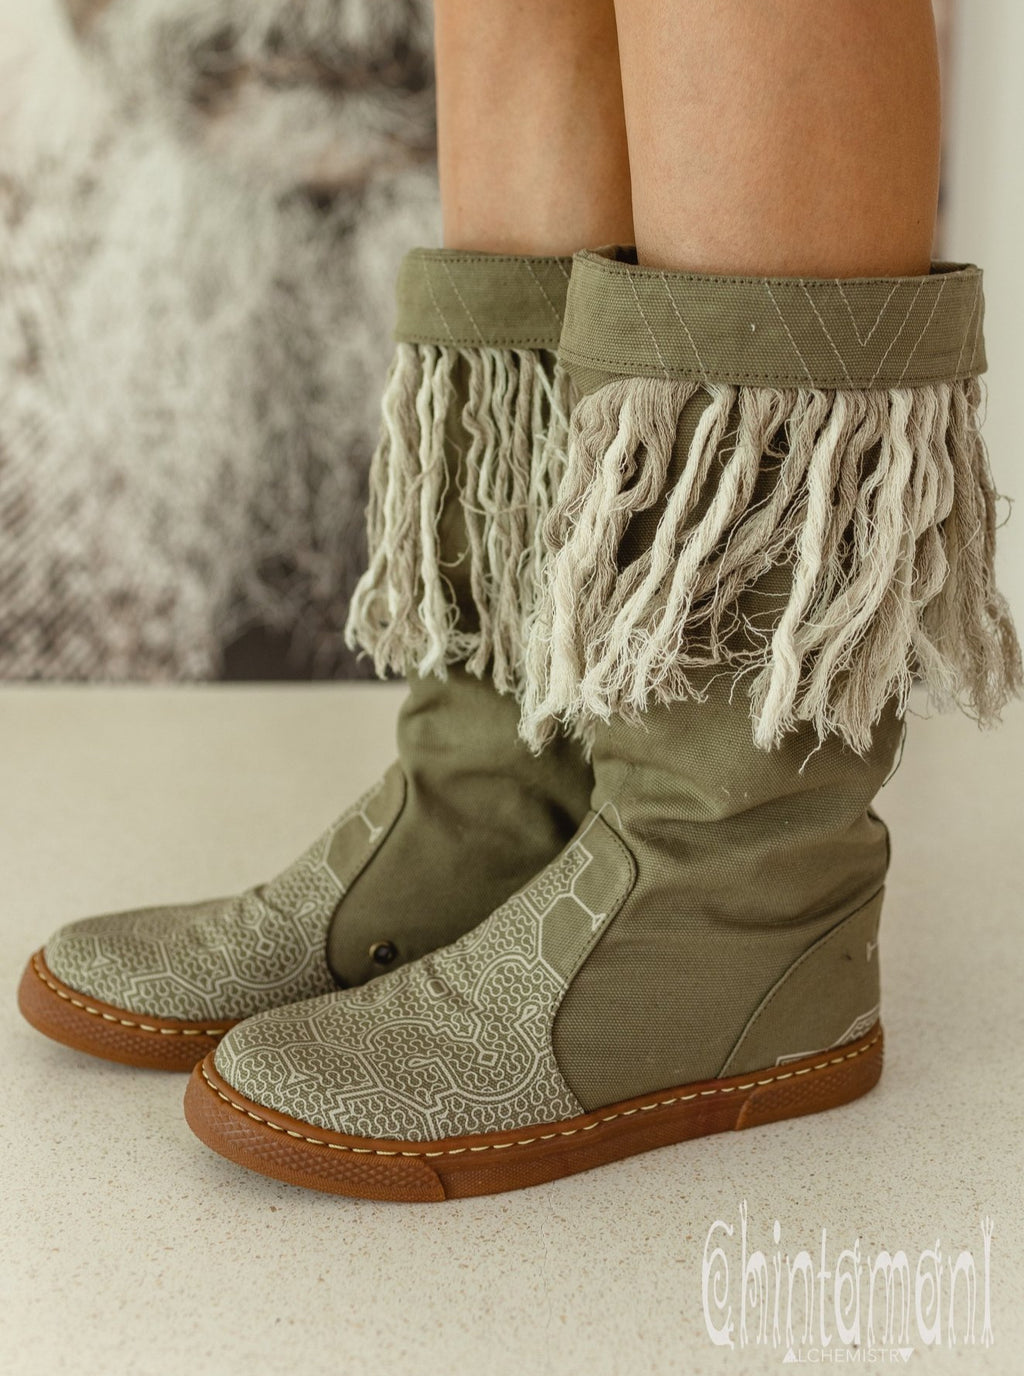 Alma Libra Cotton Canvas Vegan Fringe Boots / Boho High Shoes / Army Green - ChintamaniAlchemi